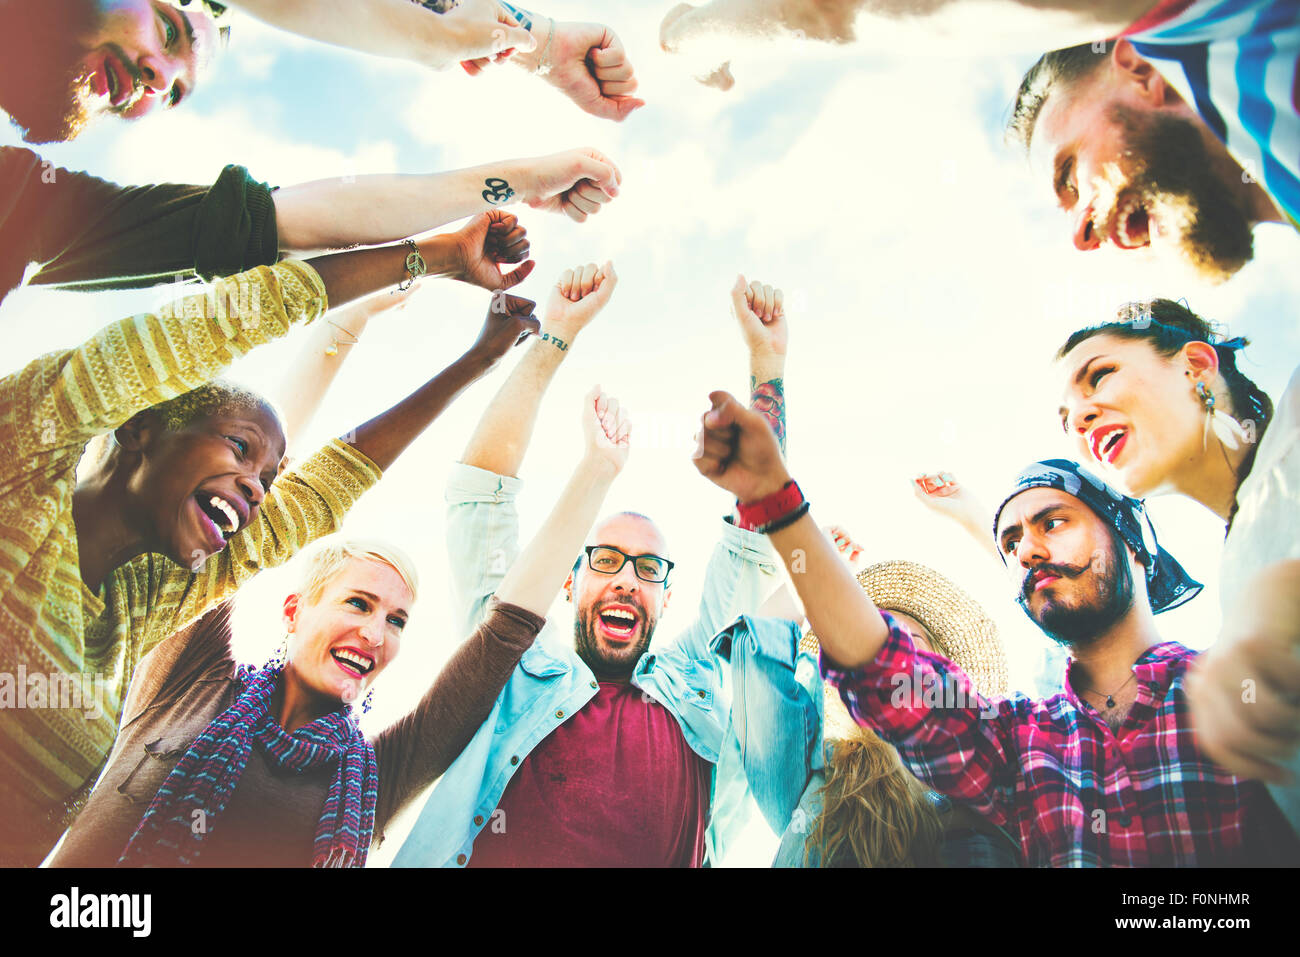 Friends Friendship Leisure Togetherness Fun Concept - Stock Image